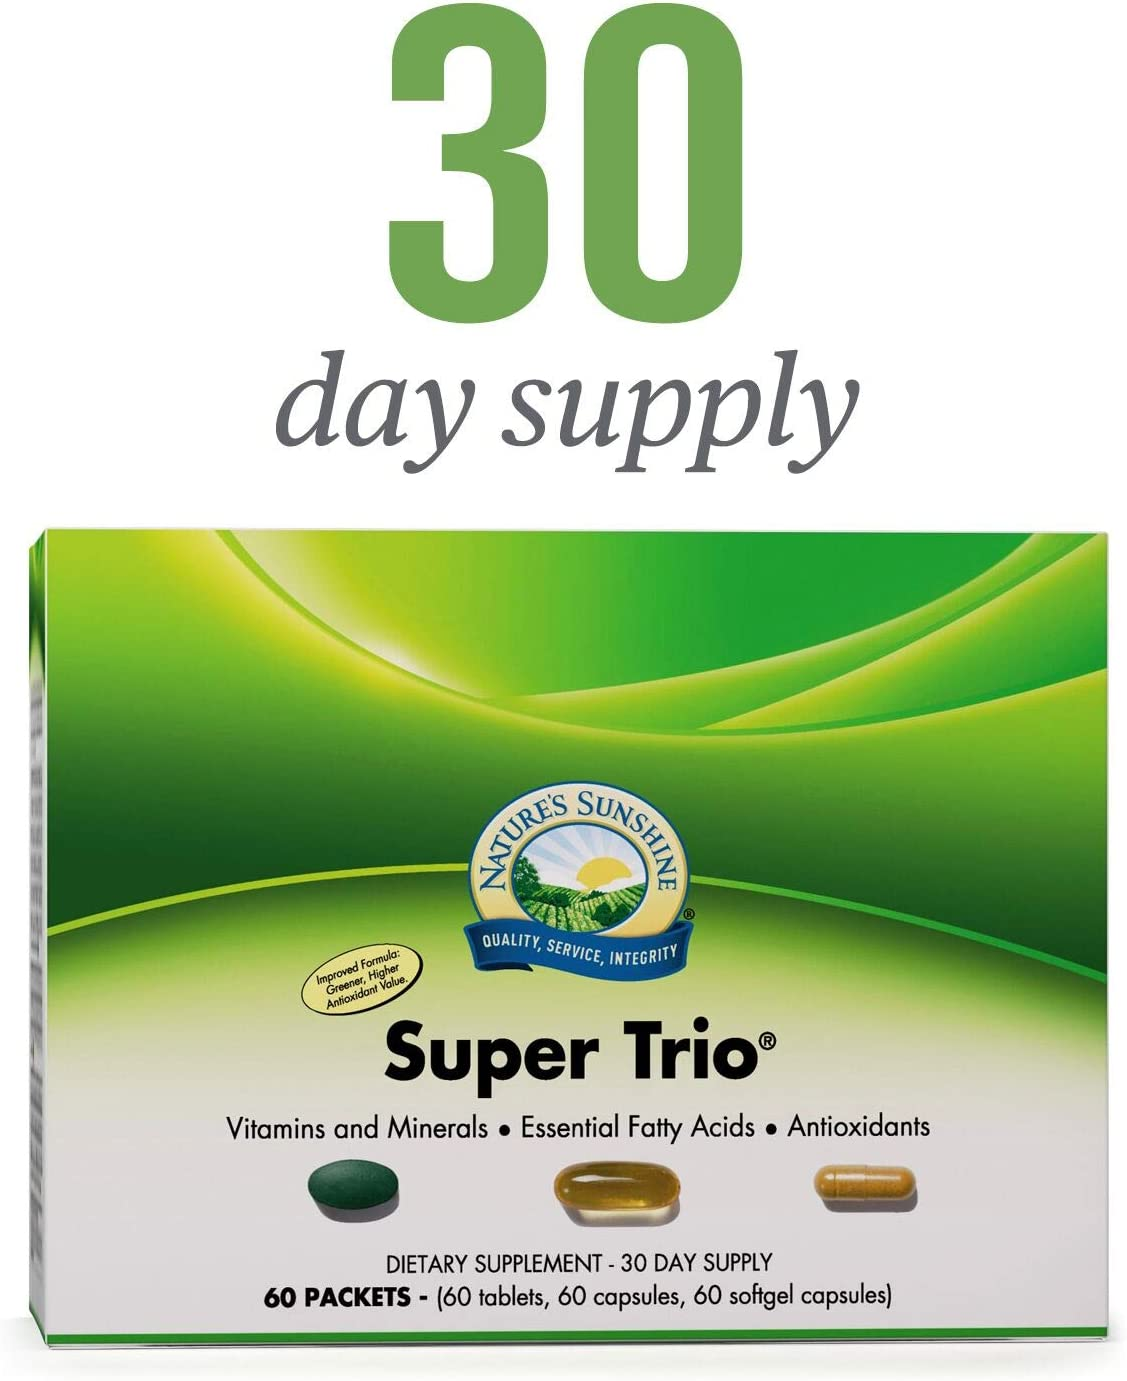 Nature s Sunshine Super Trio, 30 Day Vitamin Packs for Men and Women Provide a Potent Blend of Vitamins, Minerals, Essential Fatty Acids, and Antioxidants